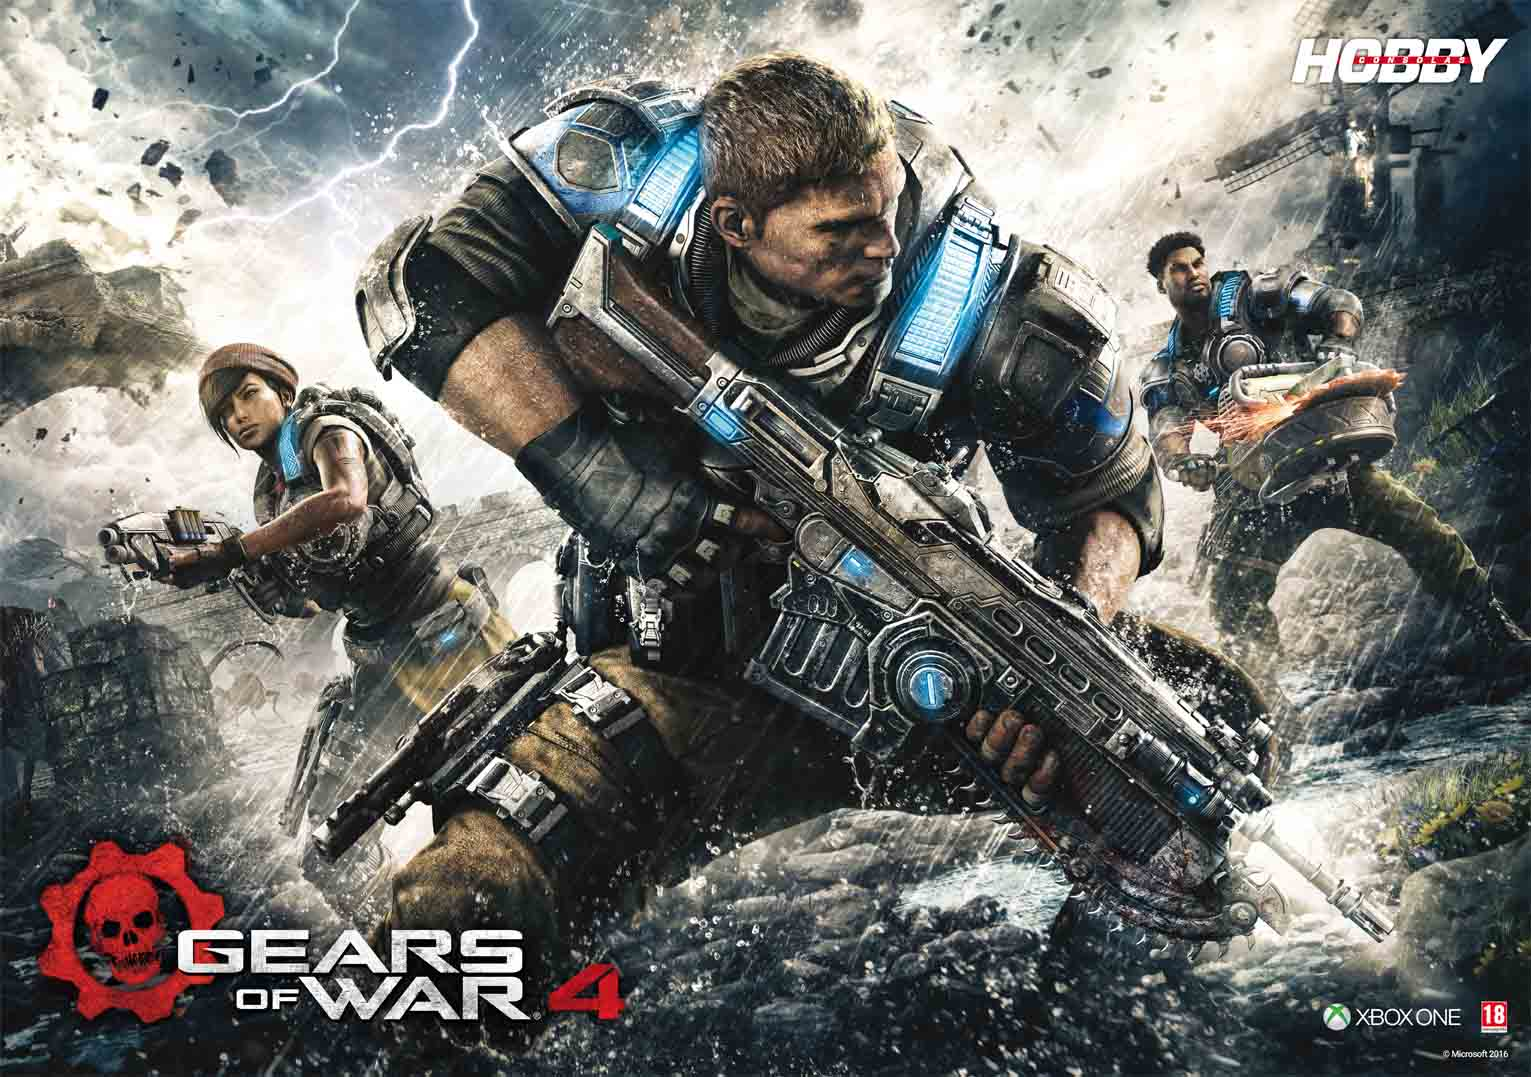 Hobby Consolas 302 poster Gears of War 4